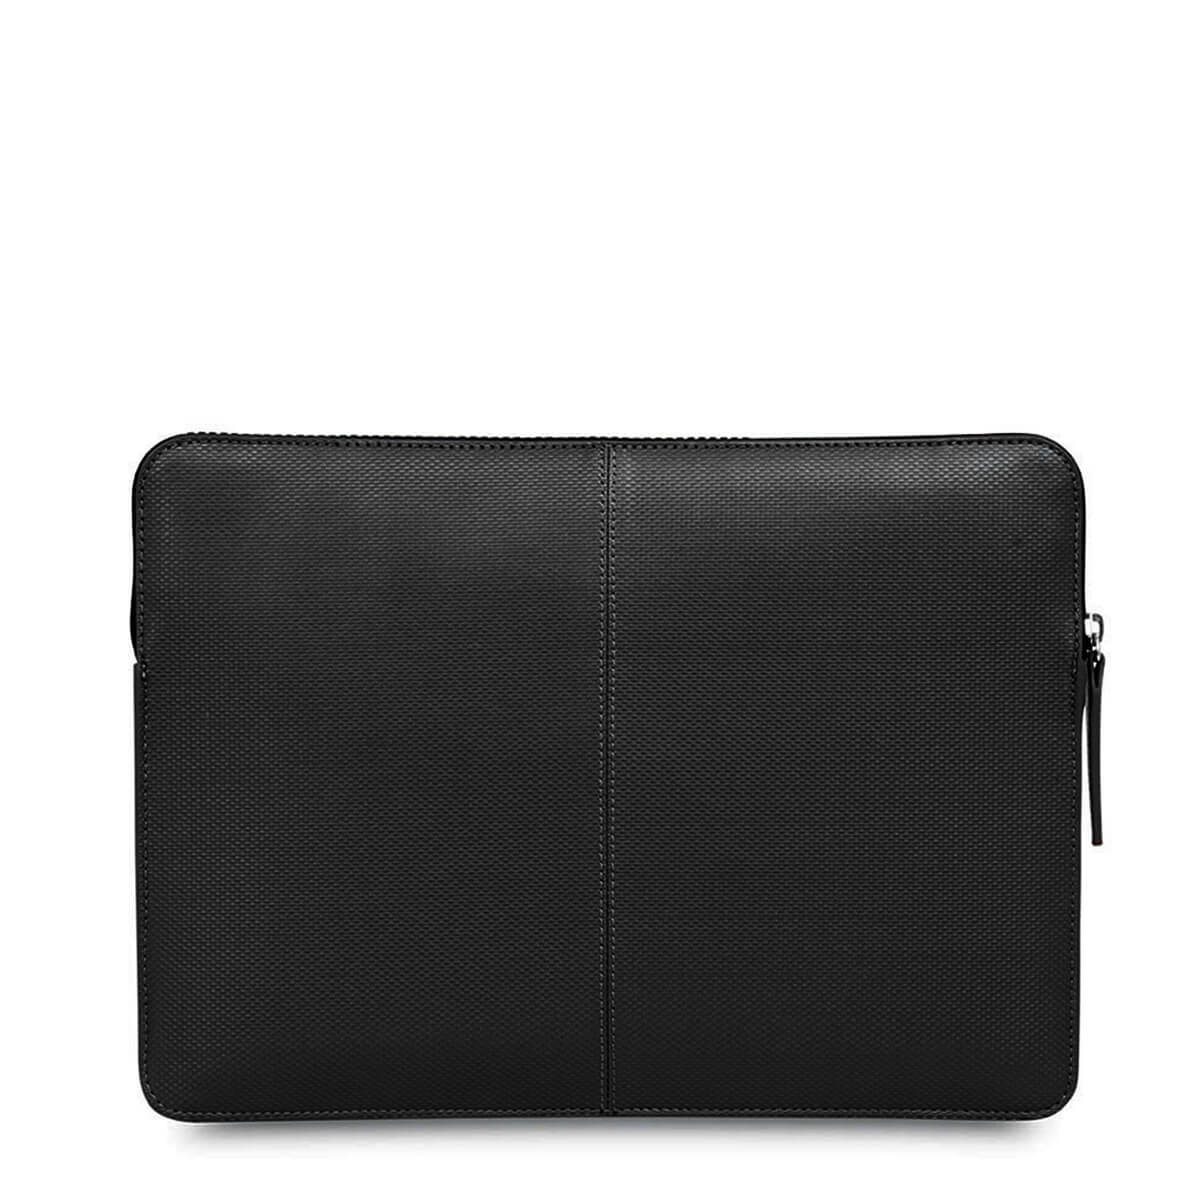 "Embossed Laptop Sleeve 12 inch Embossed Laptop Sleeve - 12"" -  Black 